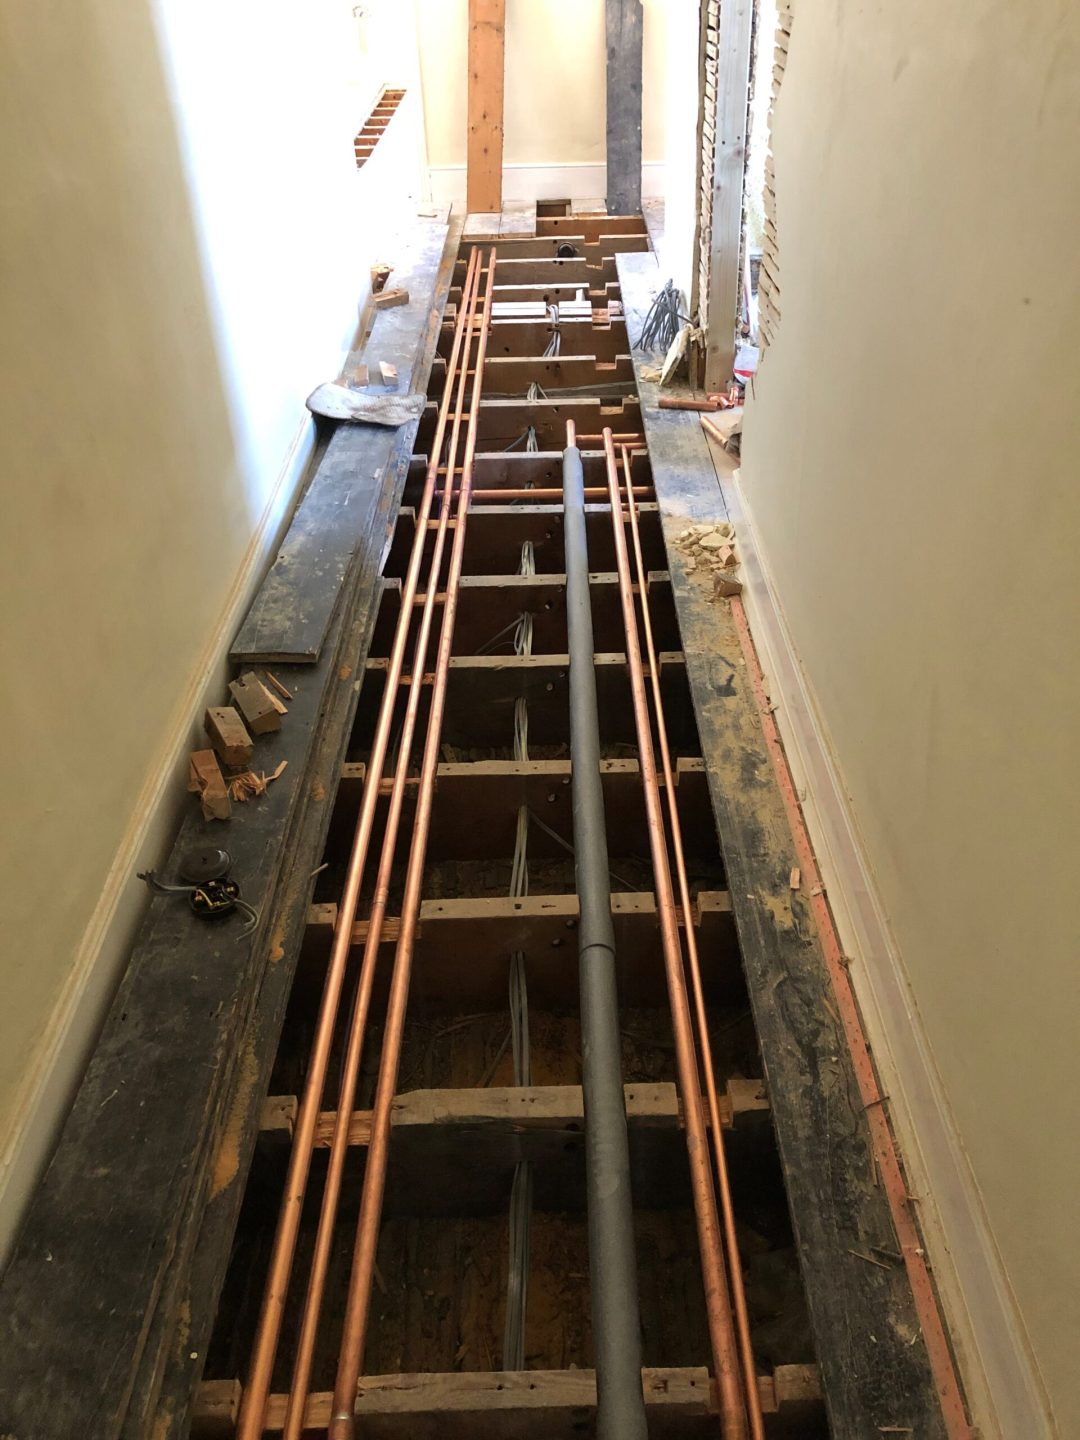 New heating pipes installed